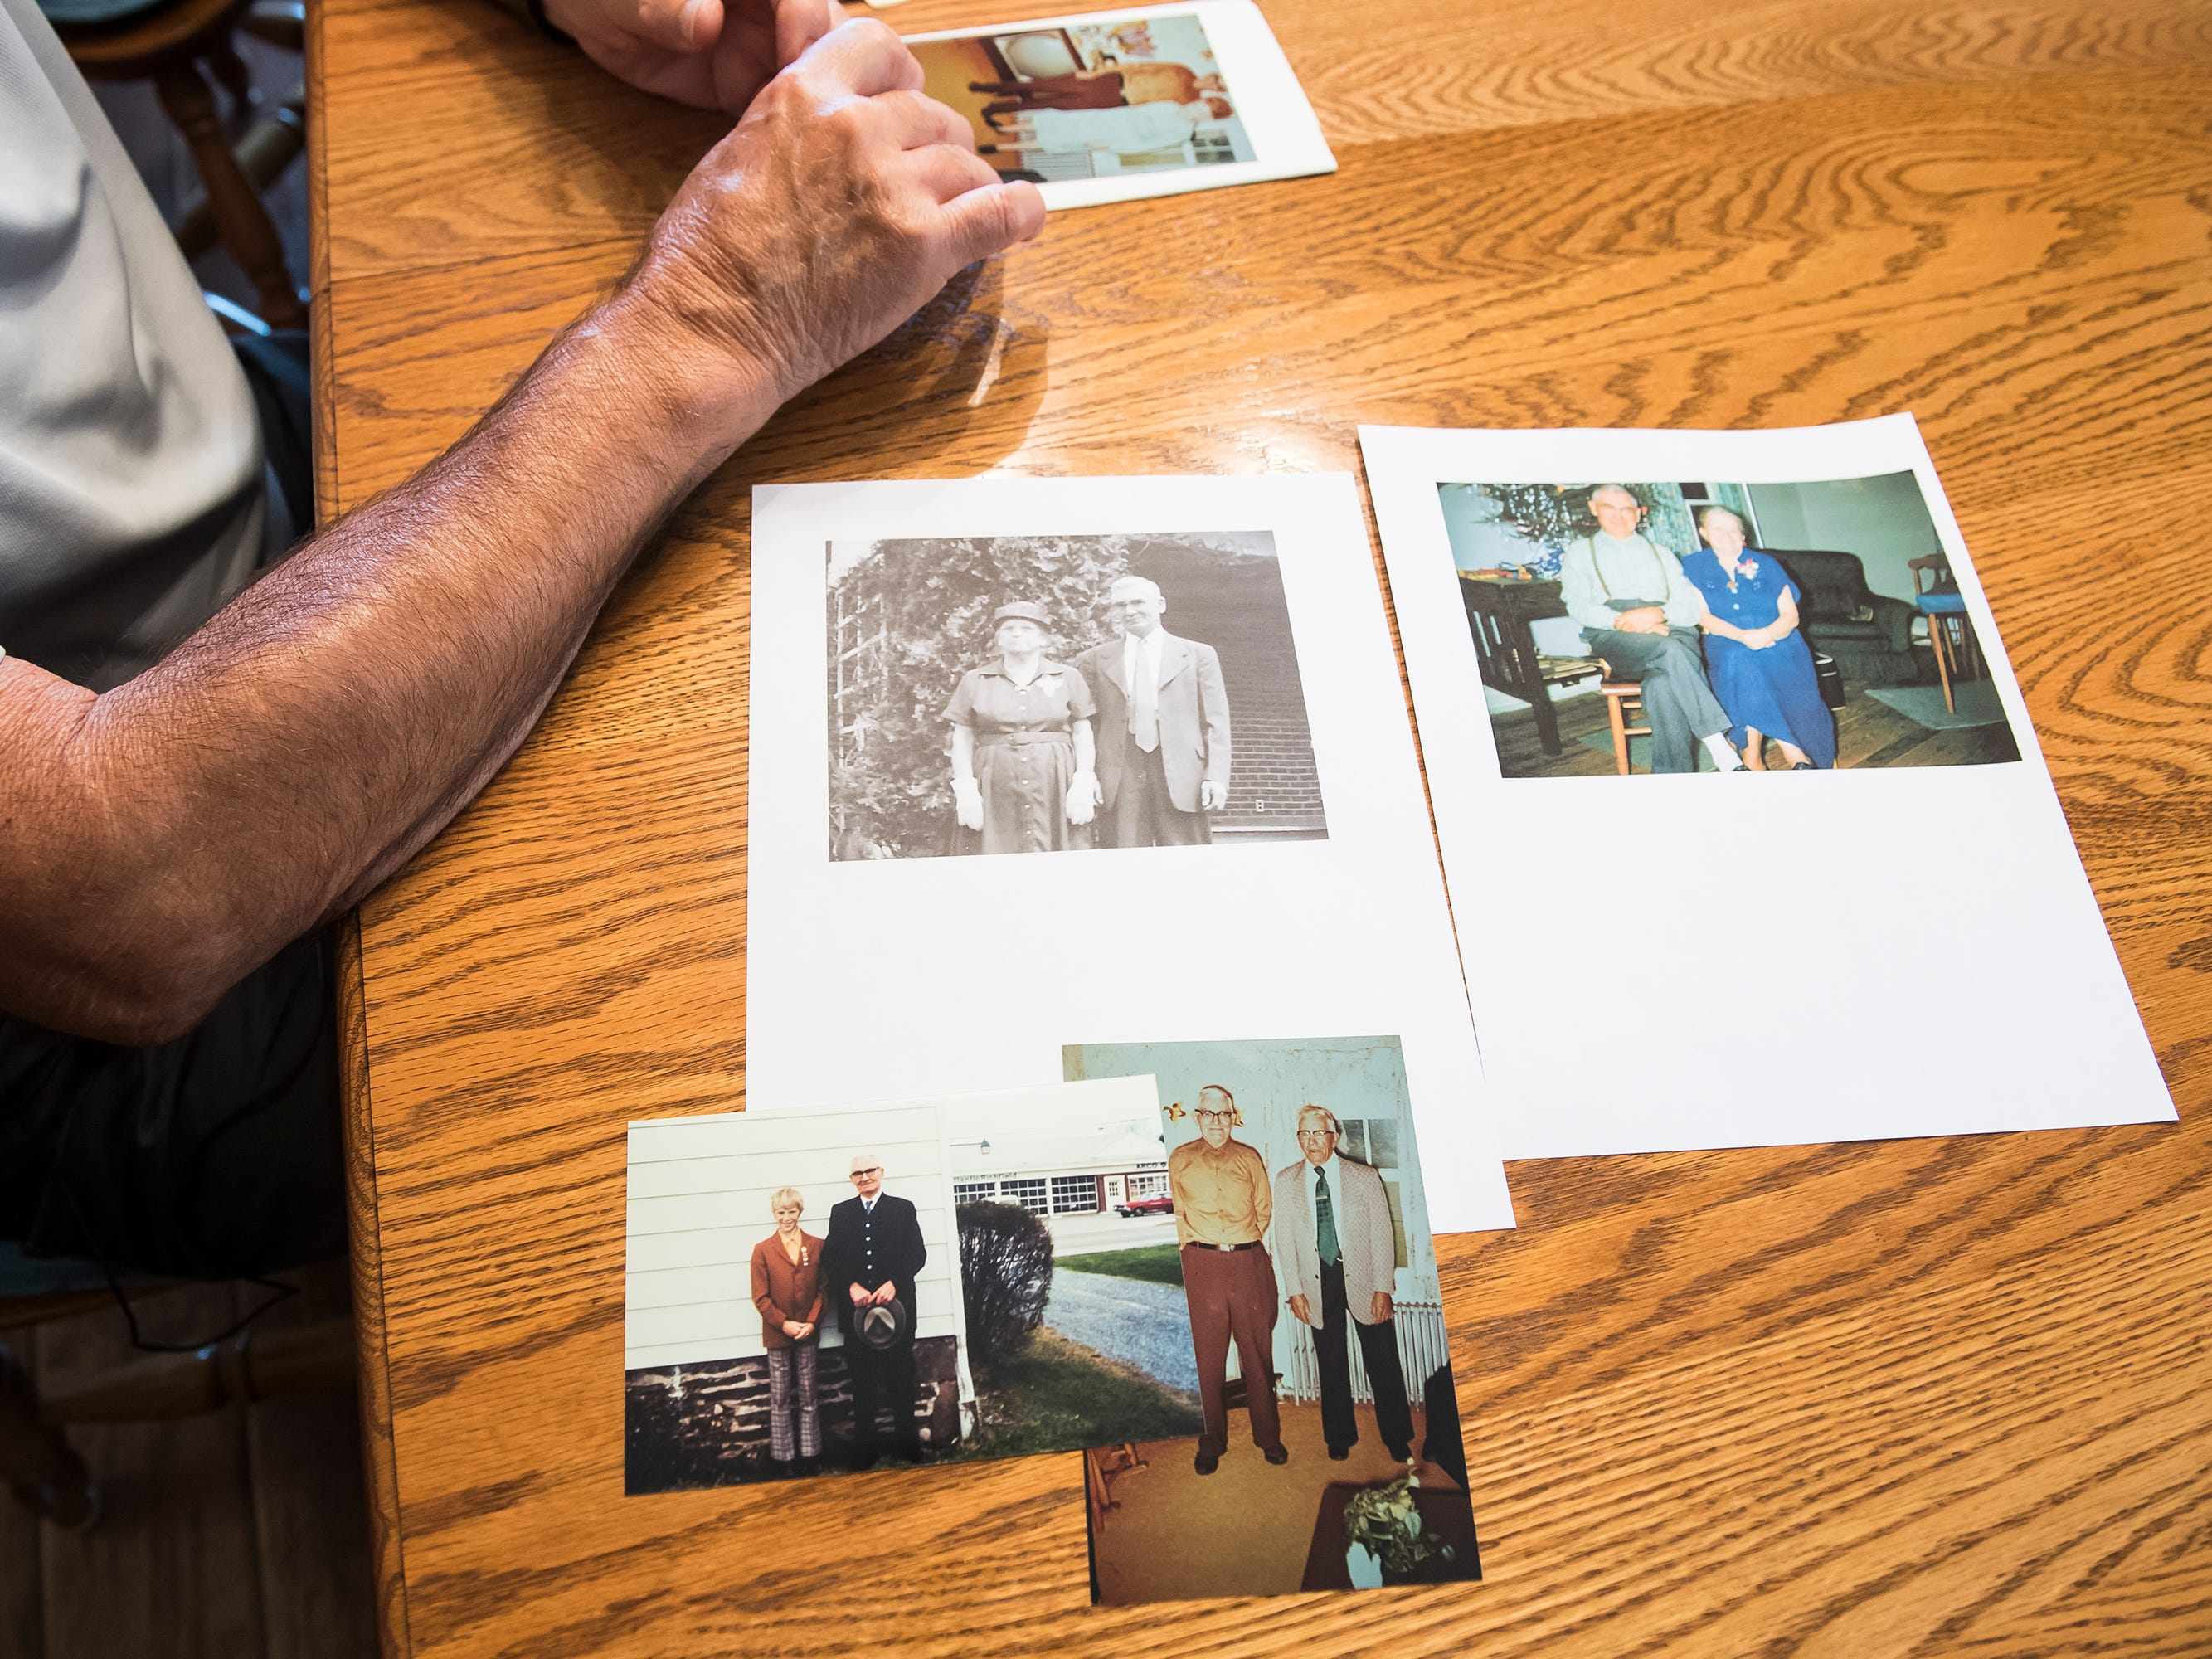 Photos of Allen Funt with various family members are spread out on Clyde Funt's dinner table in Biglerville on August 23, 2018.